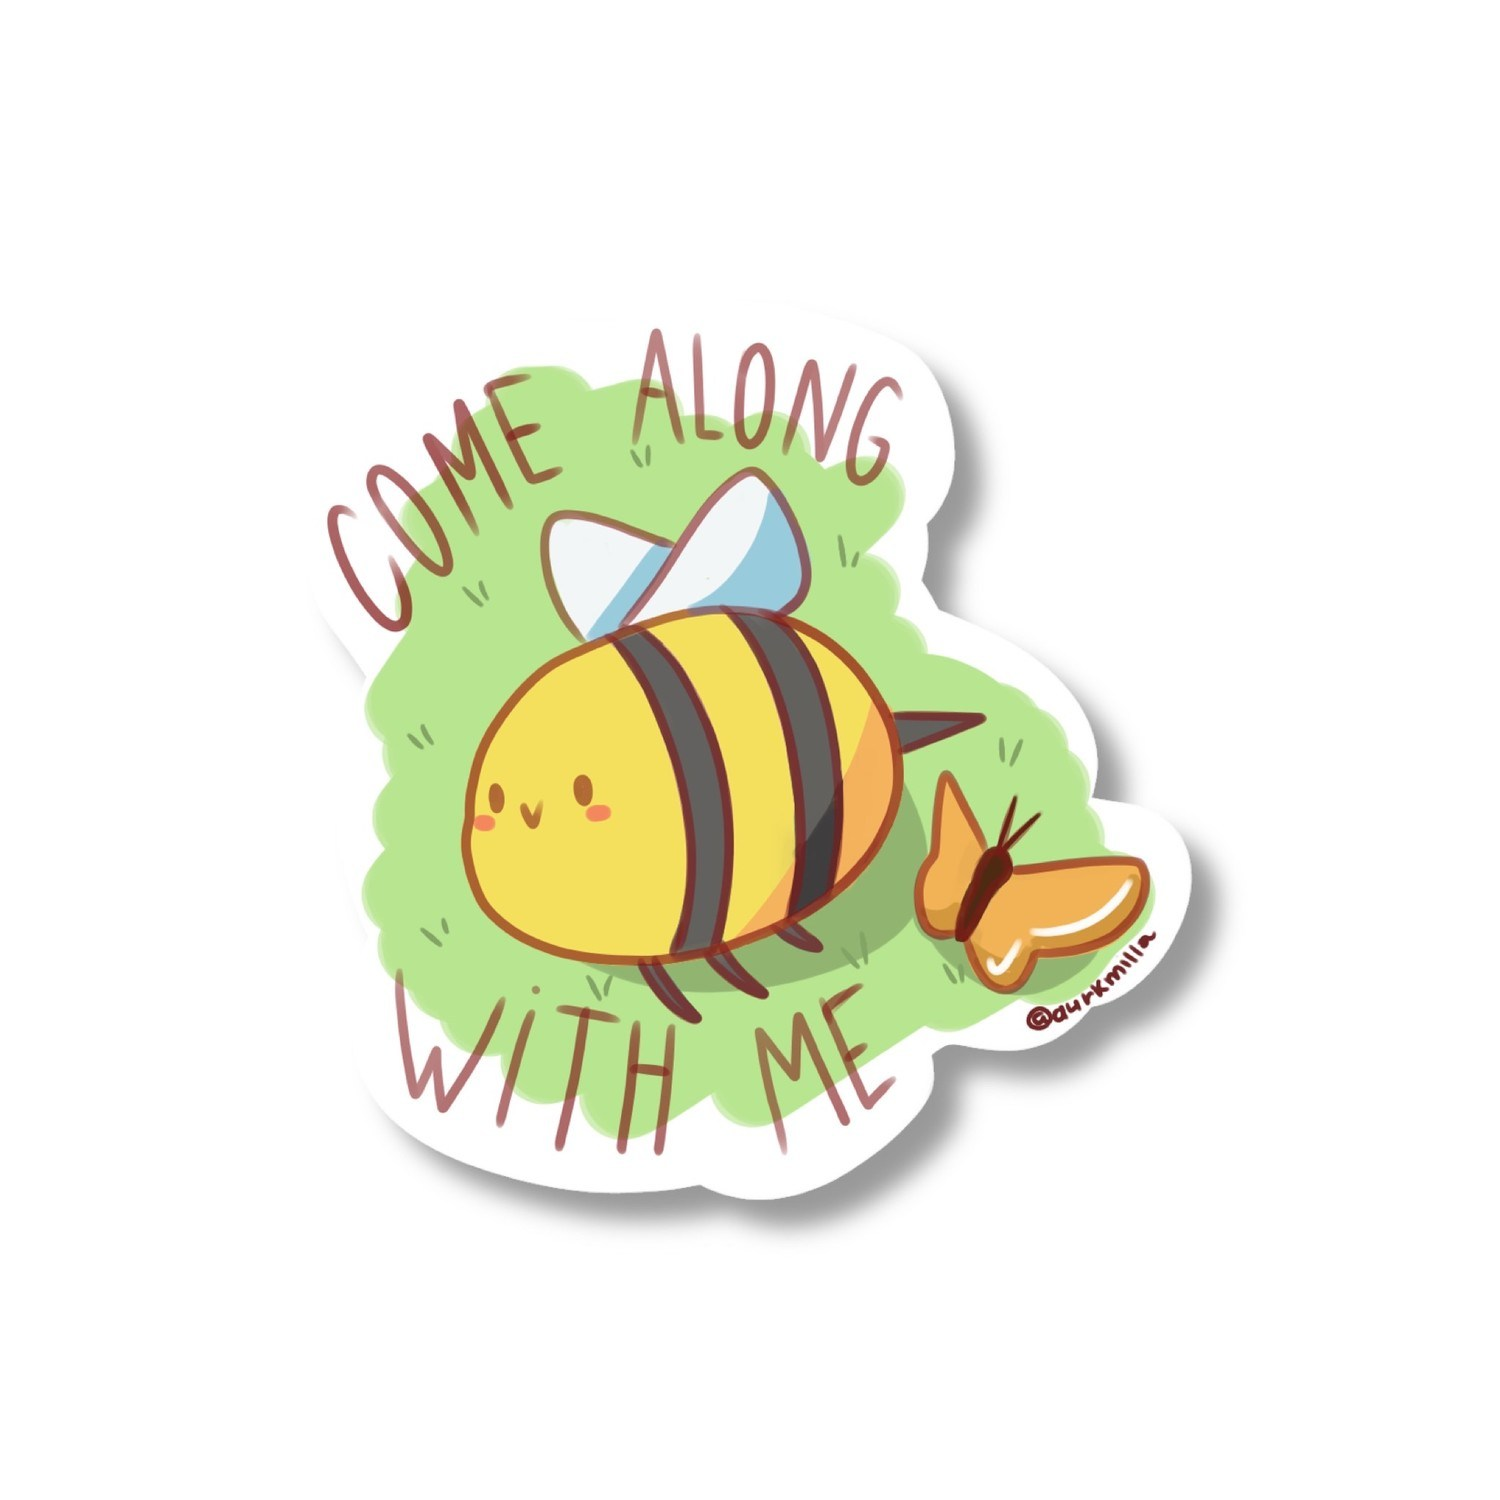 """Sticker """"Come along with me"""""""